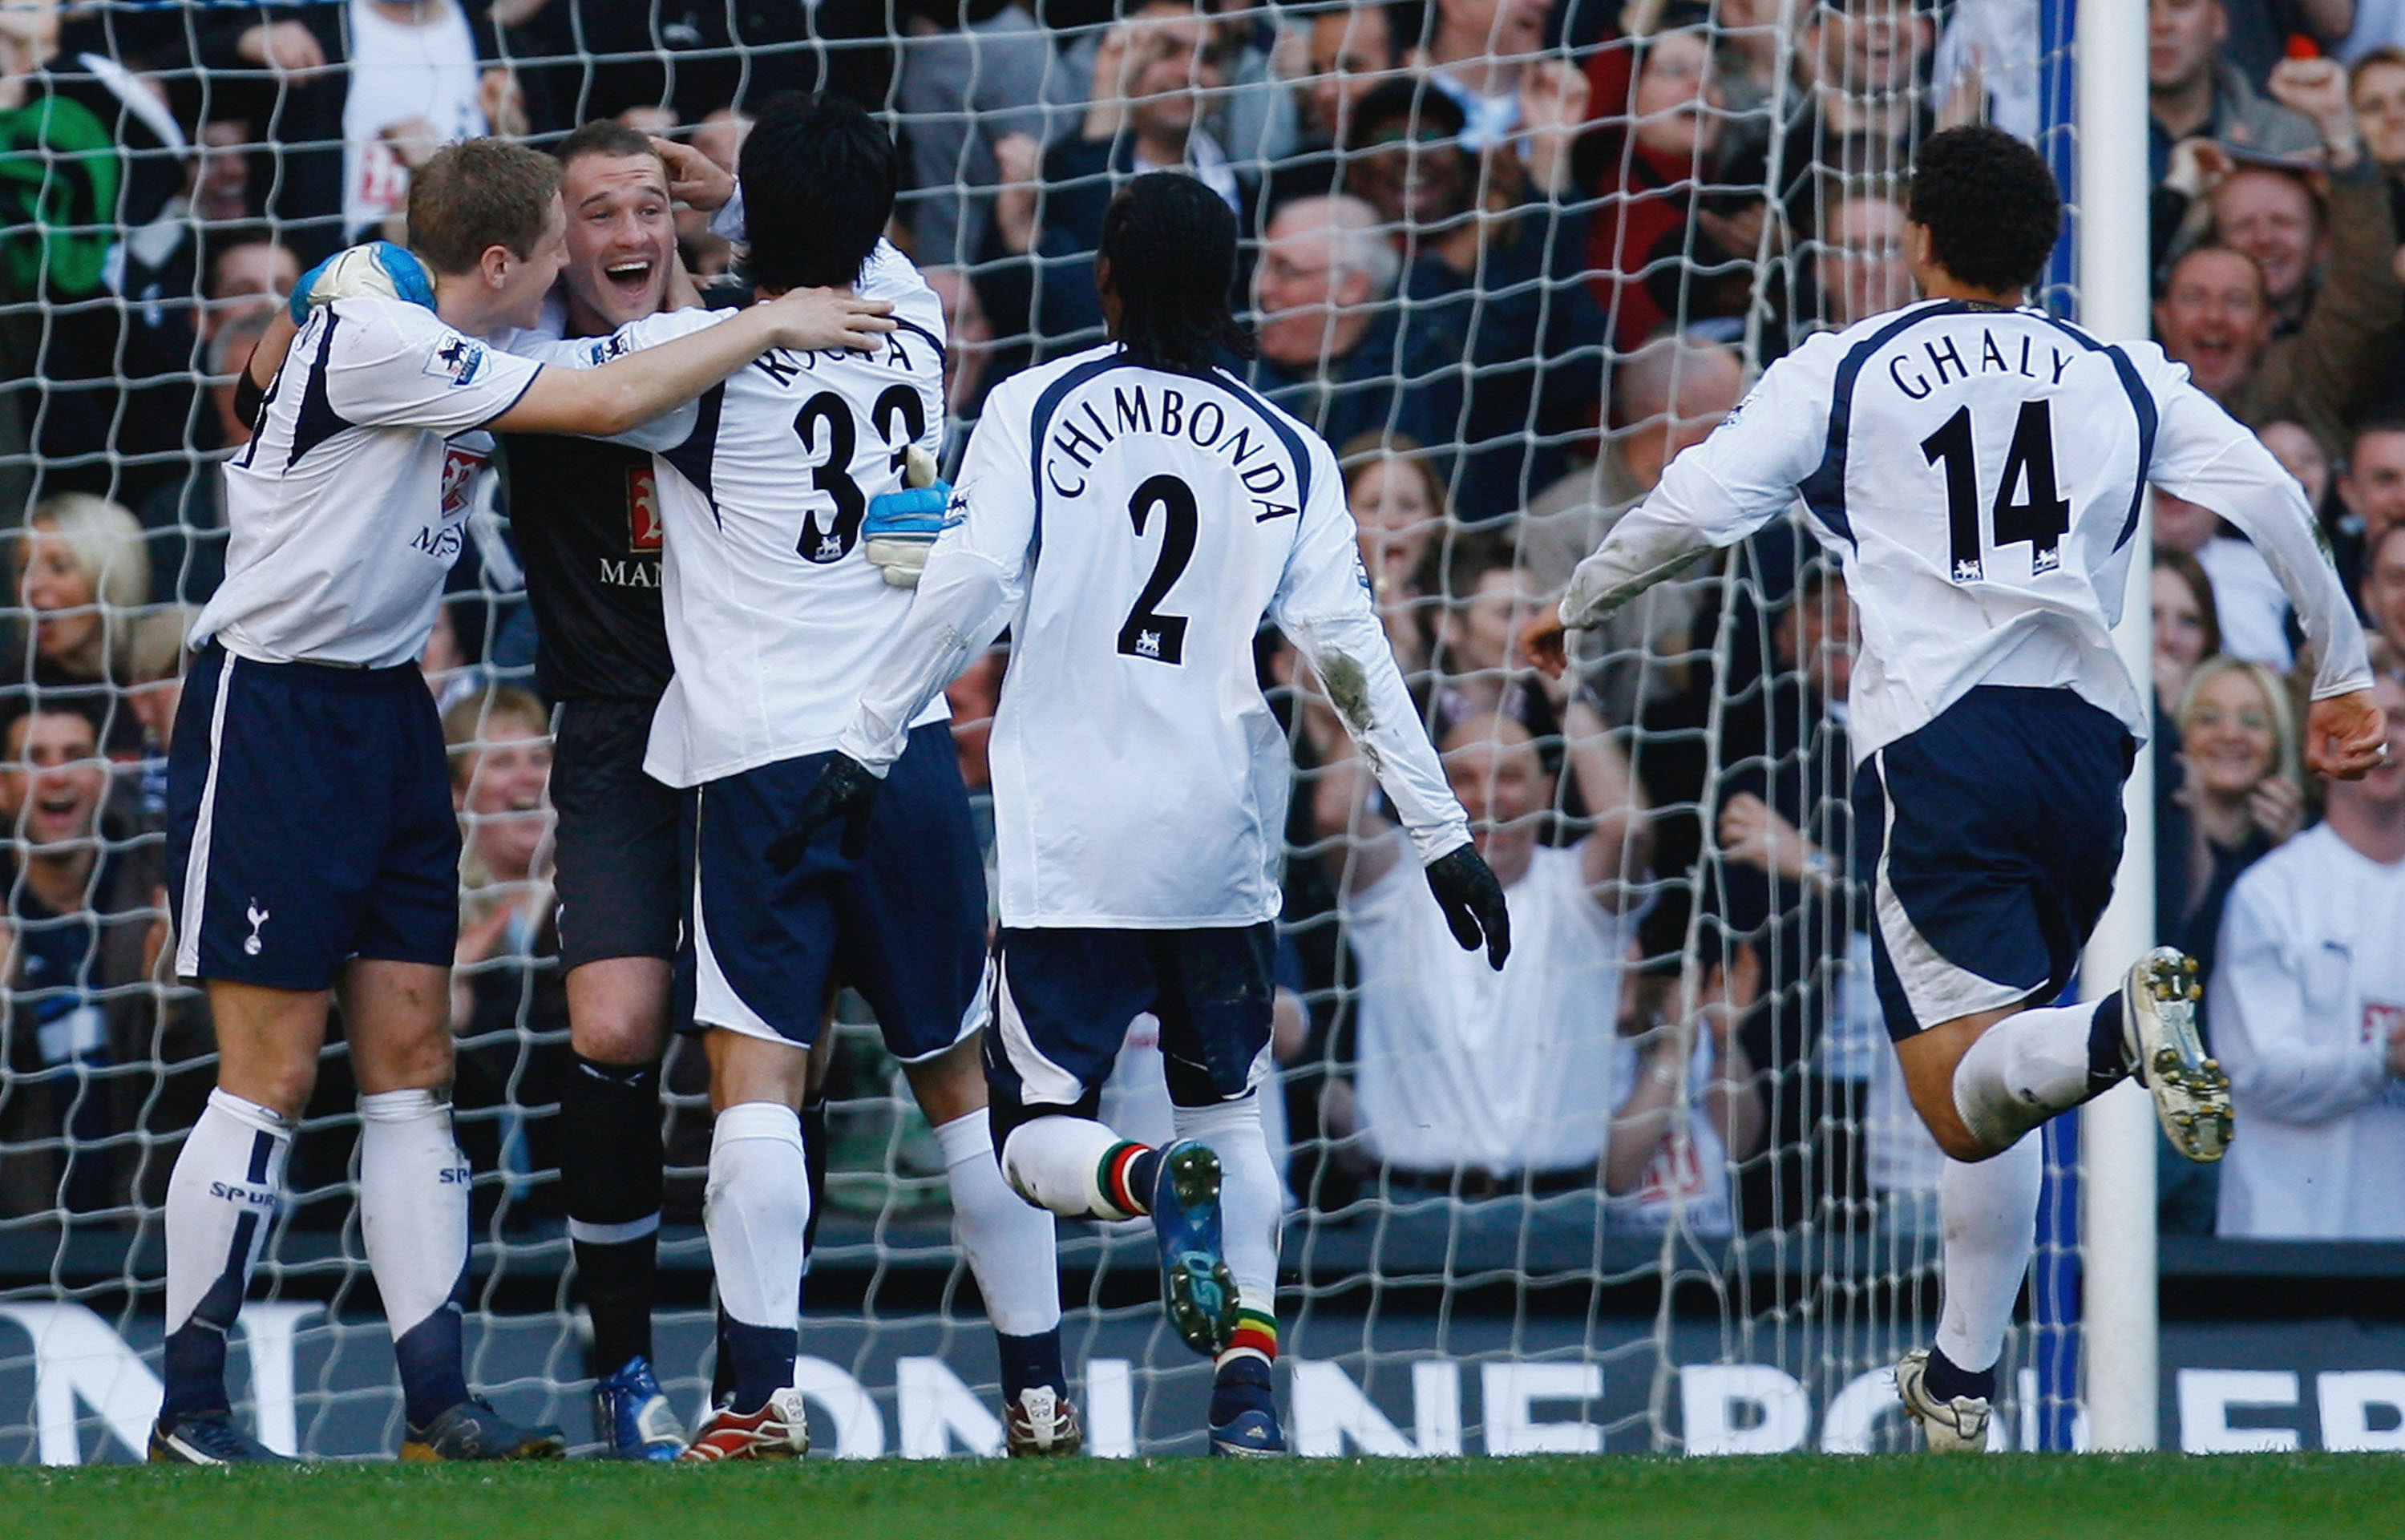 Top 5 goals from behind the half-way line in Premier League history